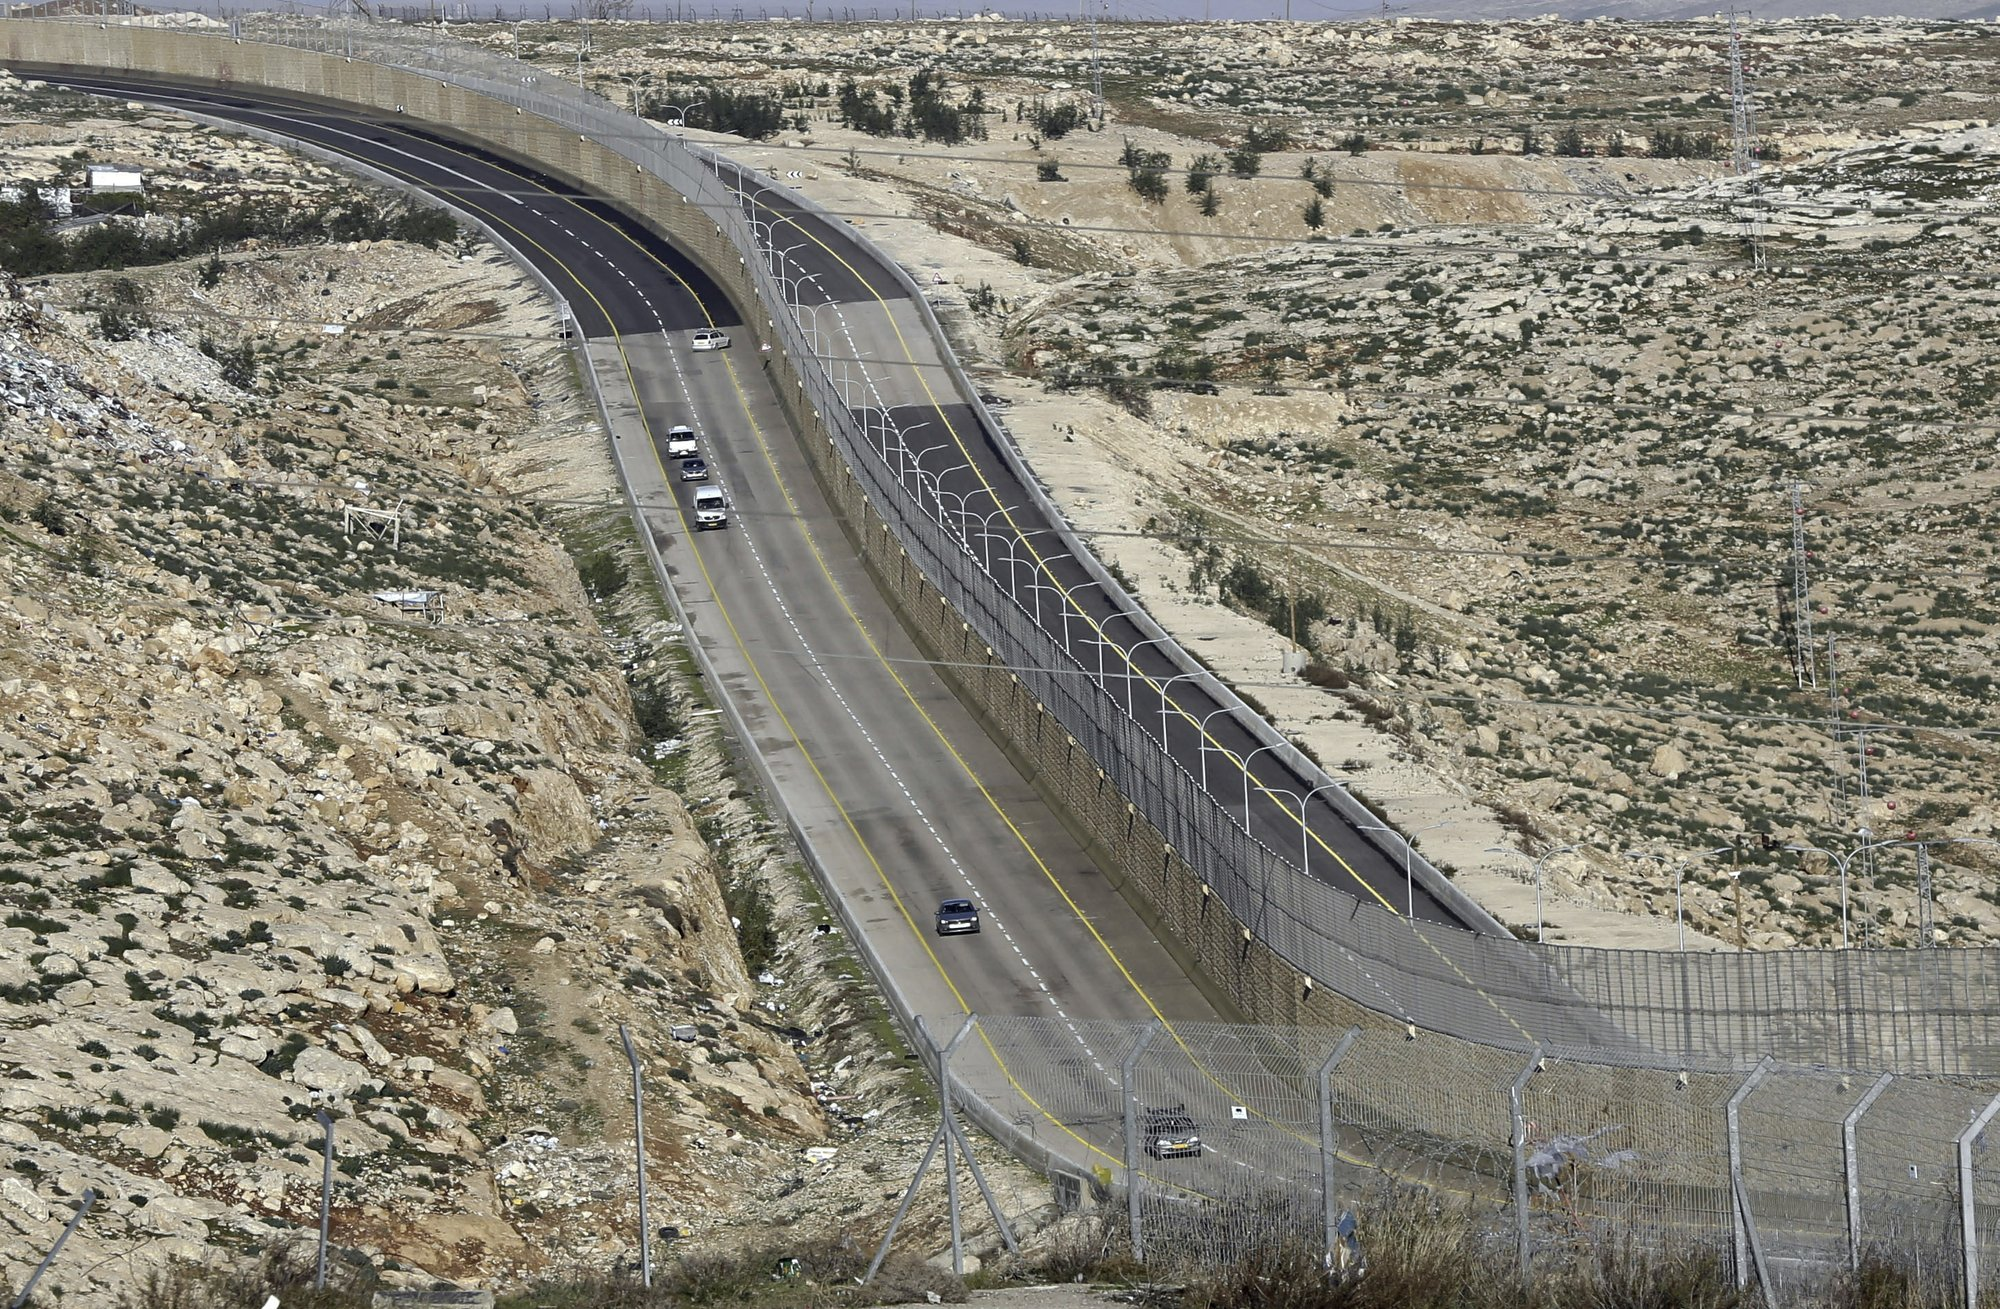 Trump's election has boosted Israeli settlement construction